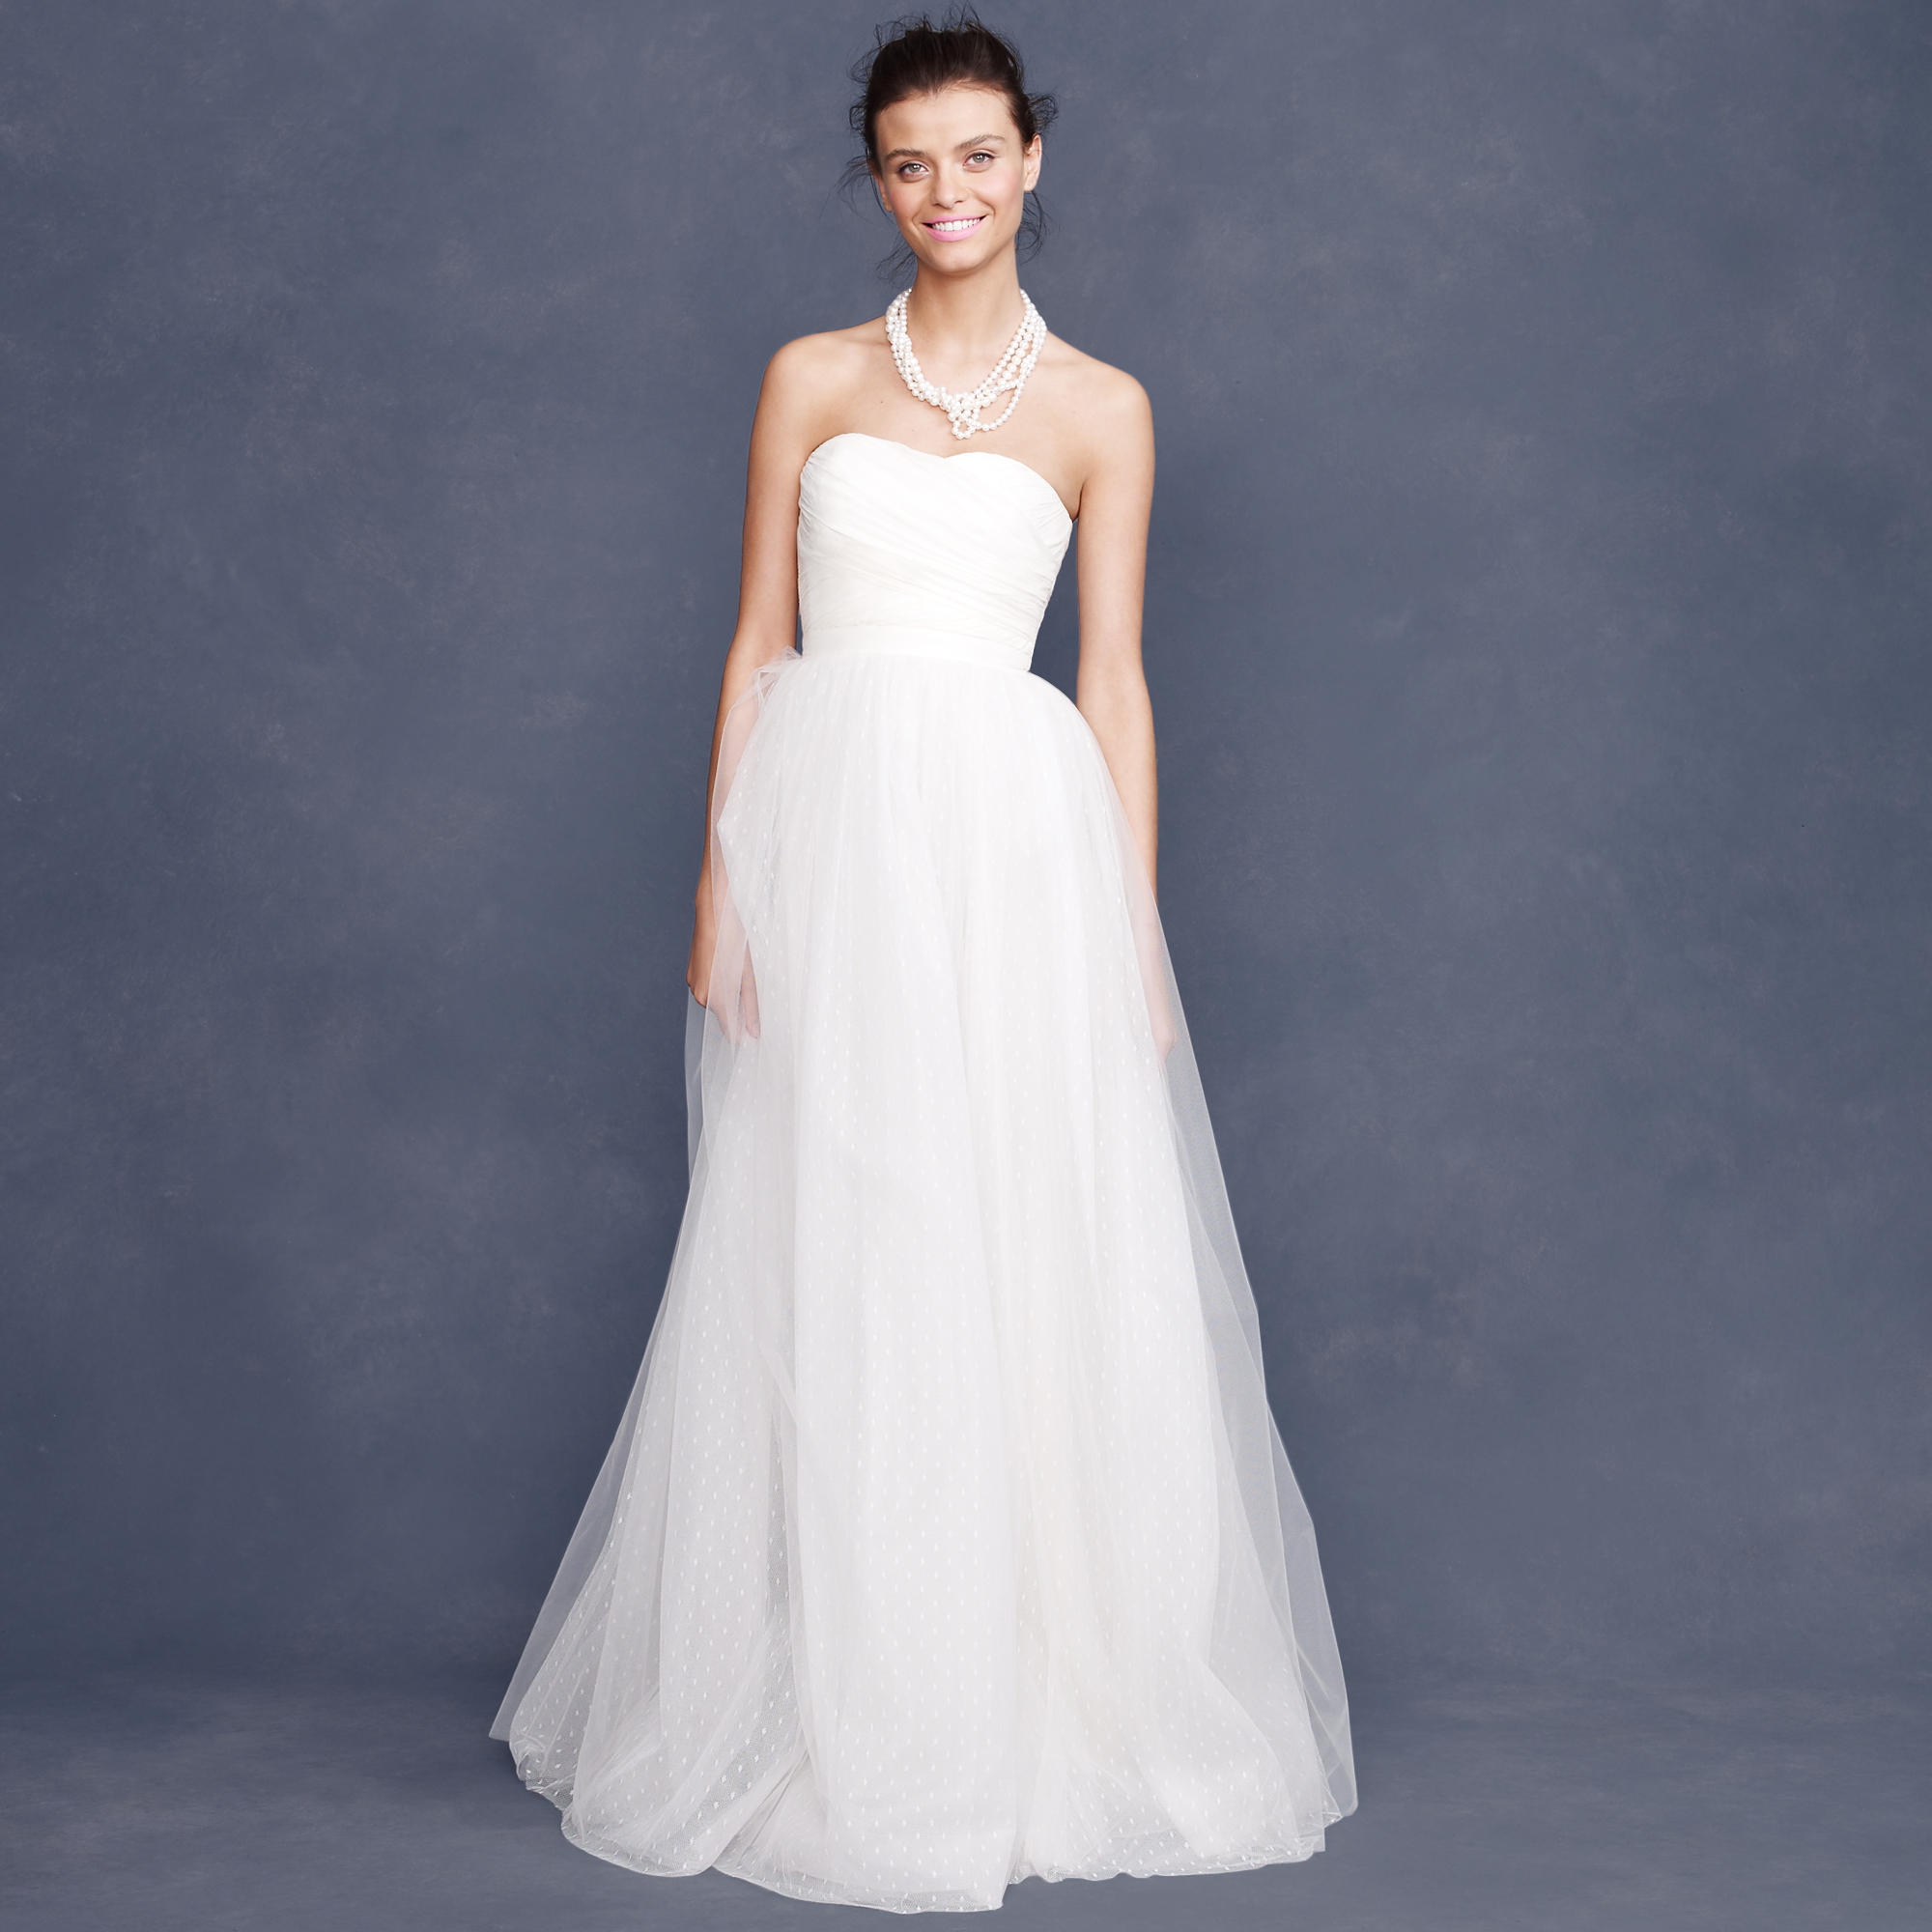 Palais gown j crew for J crew wedding dresses